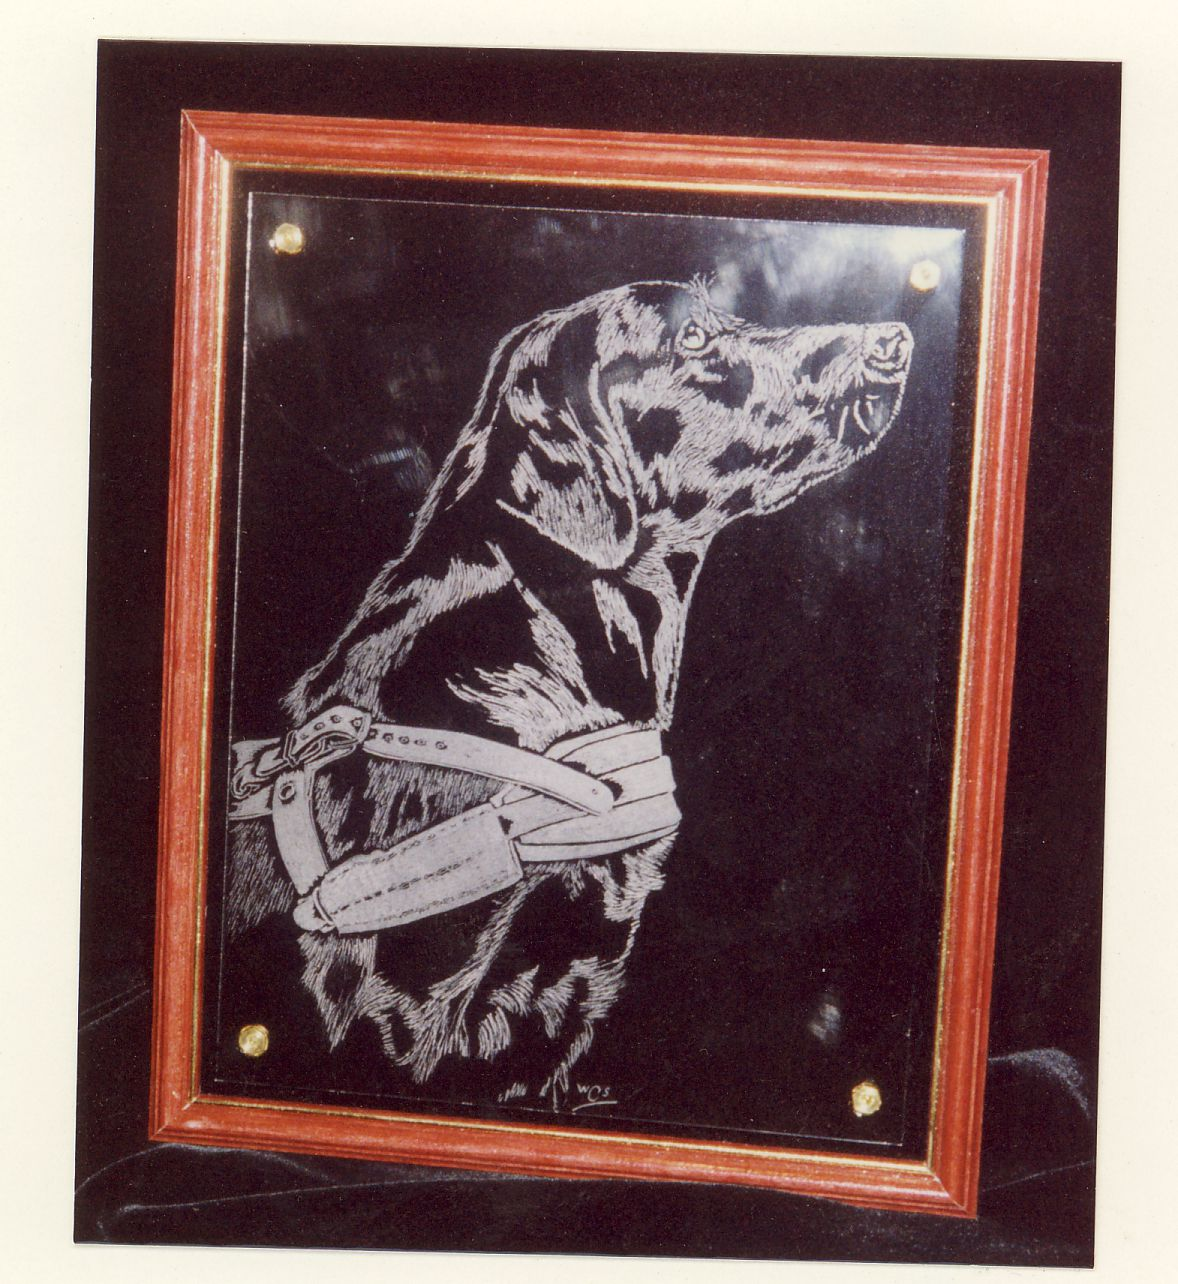 An engraving completed by me for a friend who was active in the training of Guide dogs. This is again engraved by hand on a flat glass and mounted on brass pillars above a black velvet background. This gives the engraving depth of field.